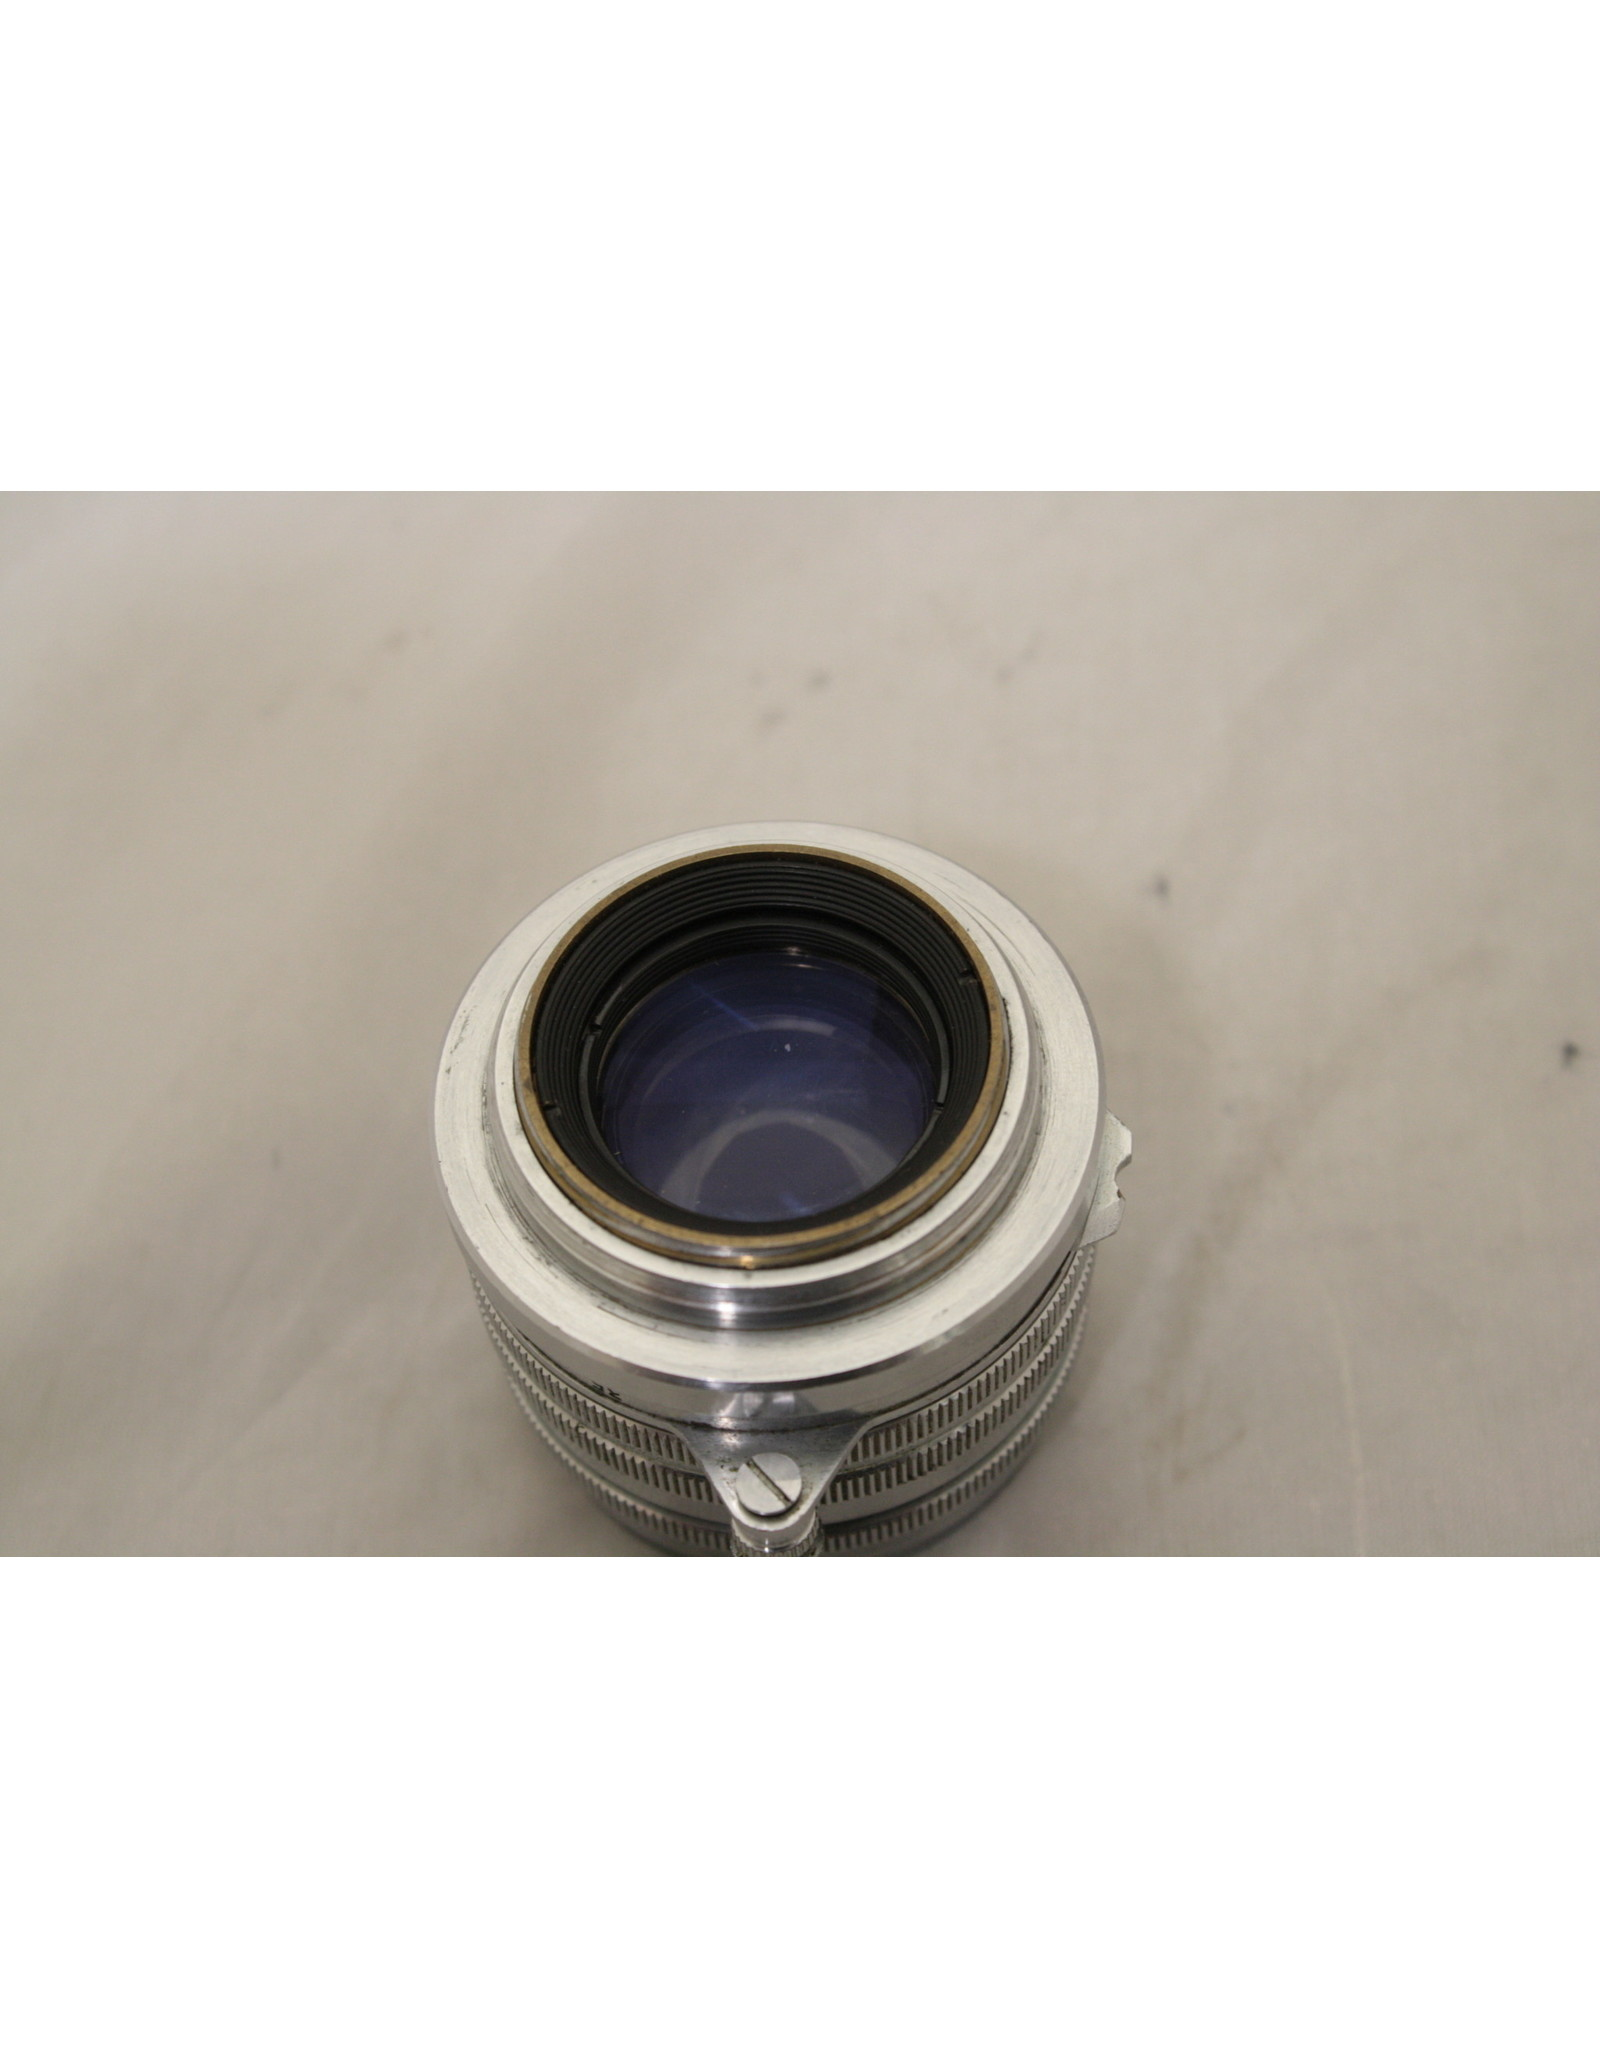 Canon 50mm 1.8 L39 Lens for Leica sn 91469